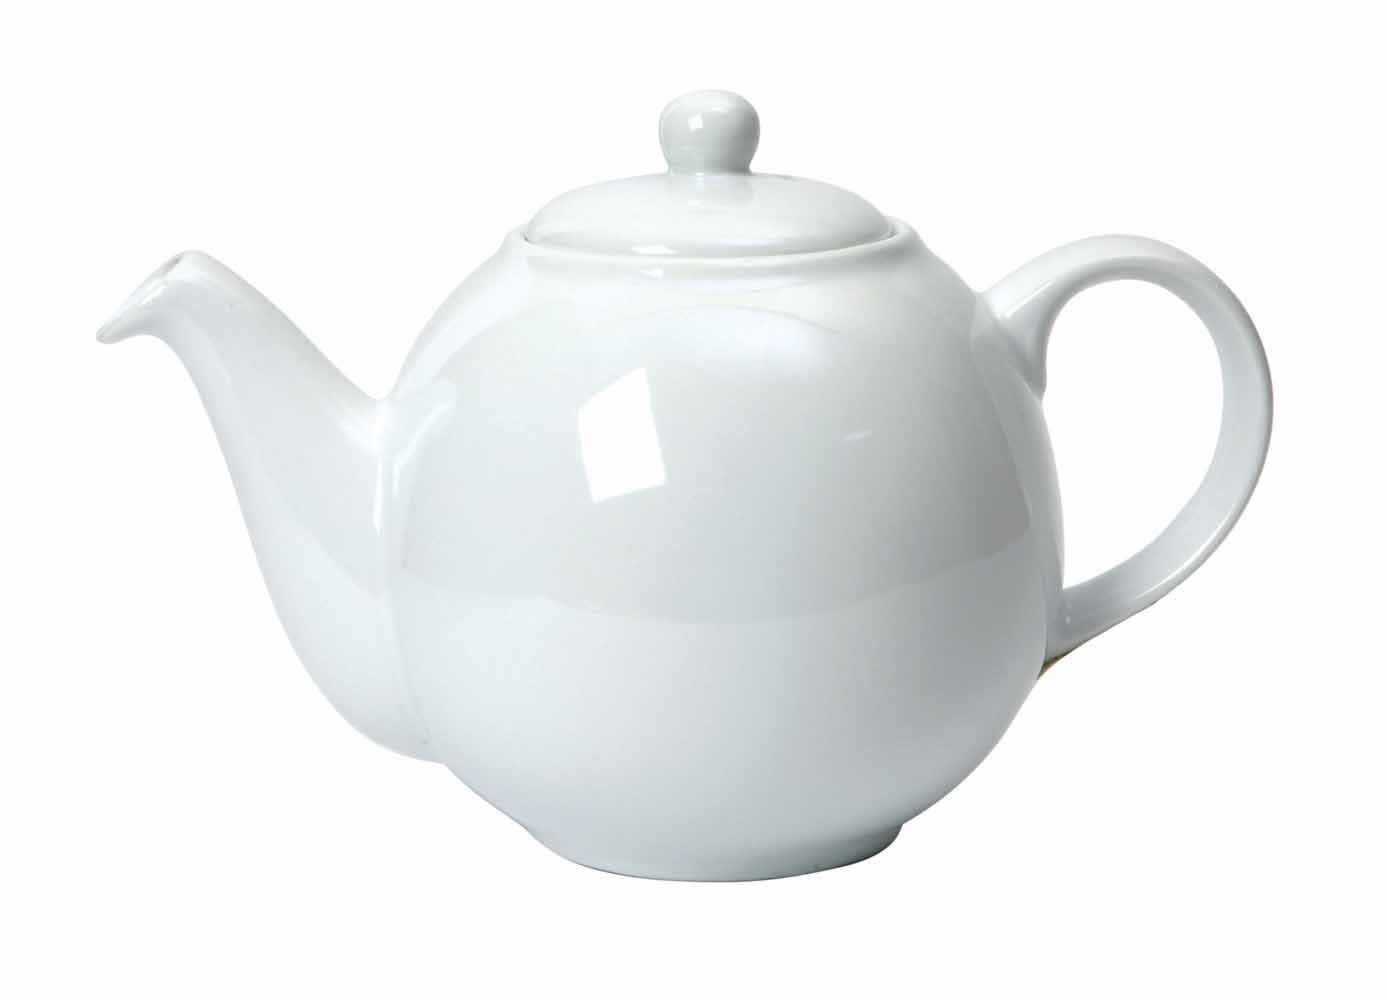 London Pottery 4 Cup Globe Teapot White 17232110 Ceramic Gift Boxed Serveware_Teapots_Kettles